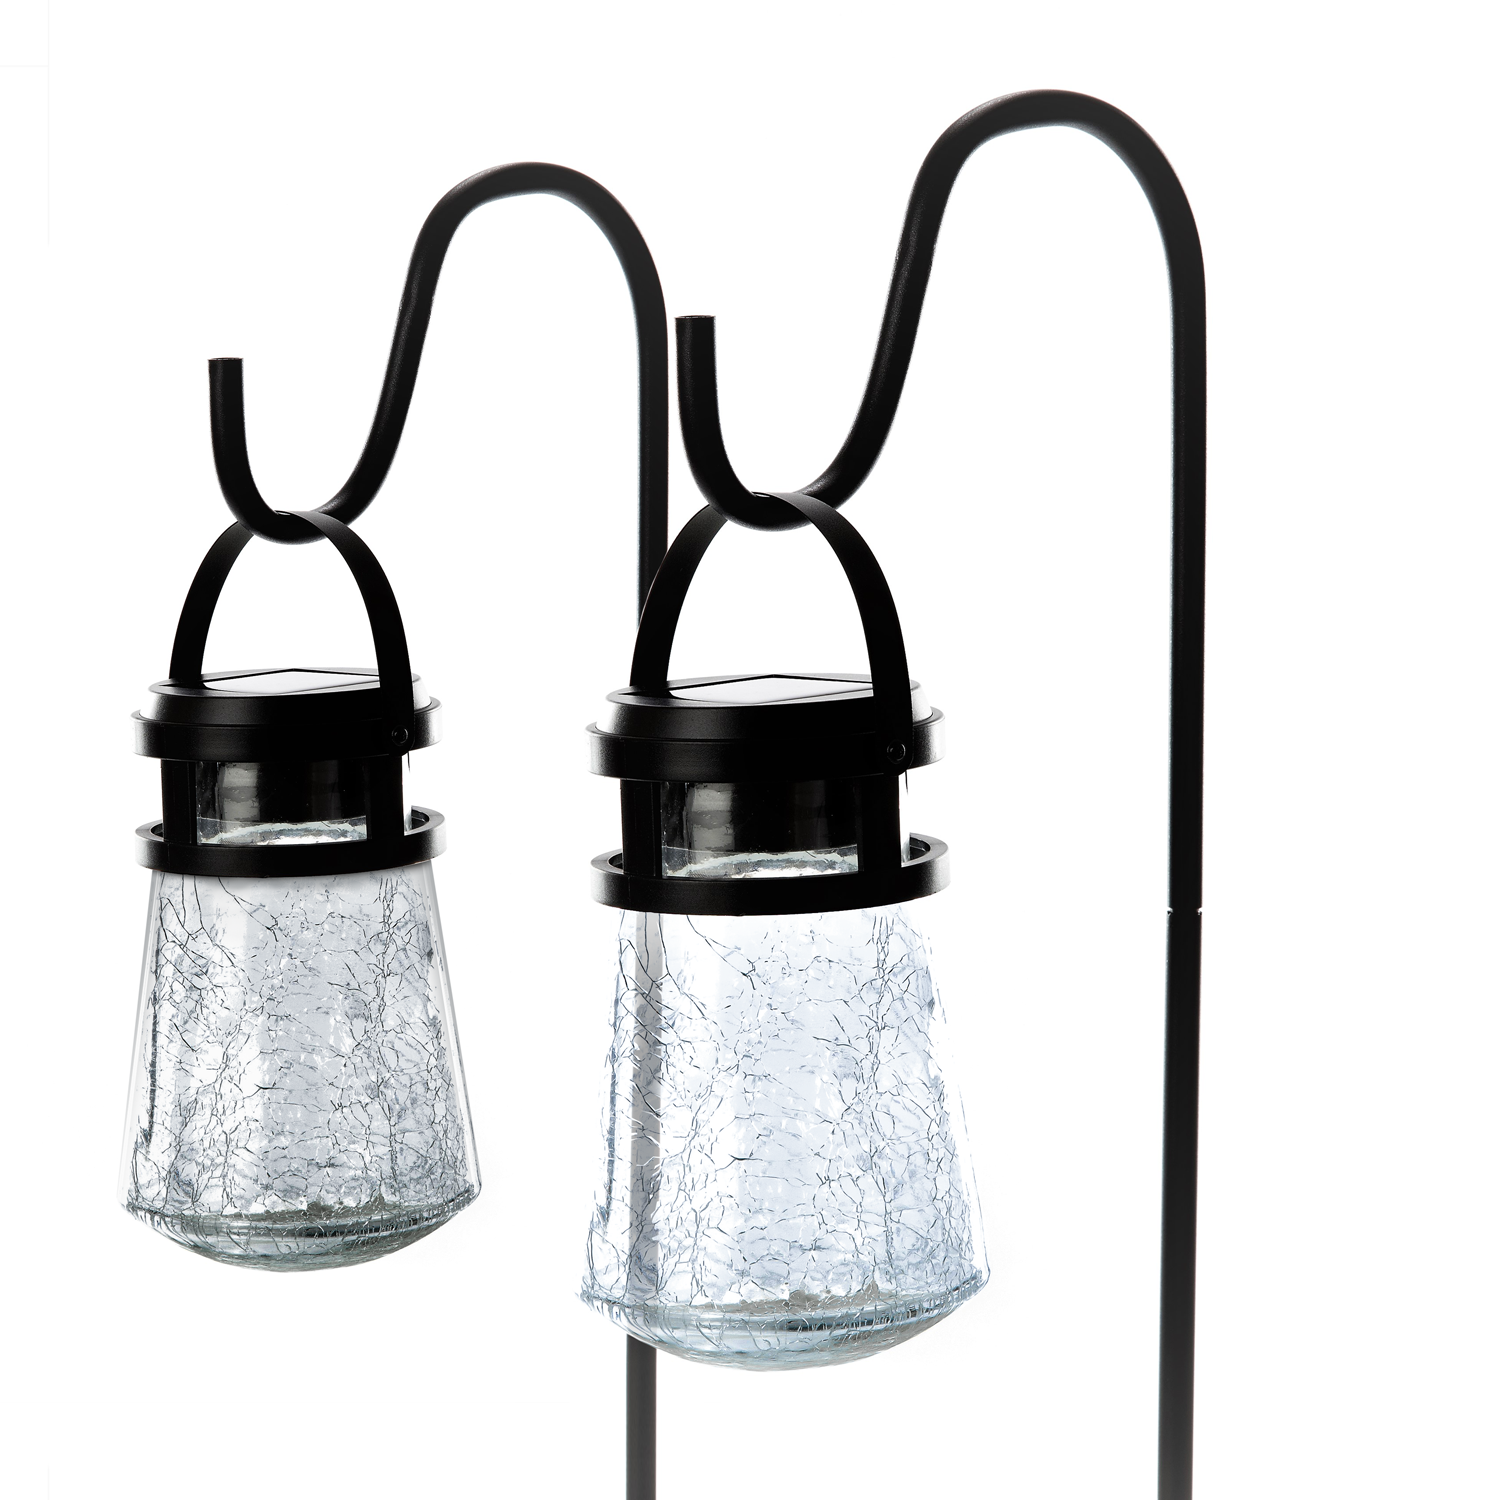 Home Goods Squad via Amazon: 2 Pack Outdoor Solar Crackle Glass Pathway Lights - $20.99 + Free Shipping